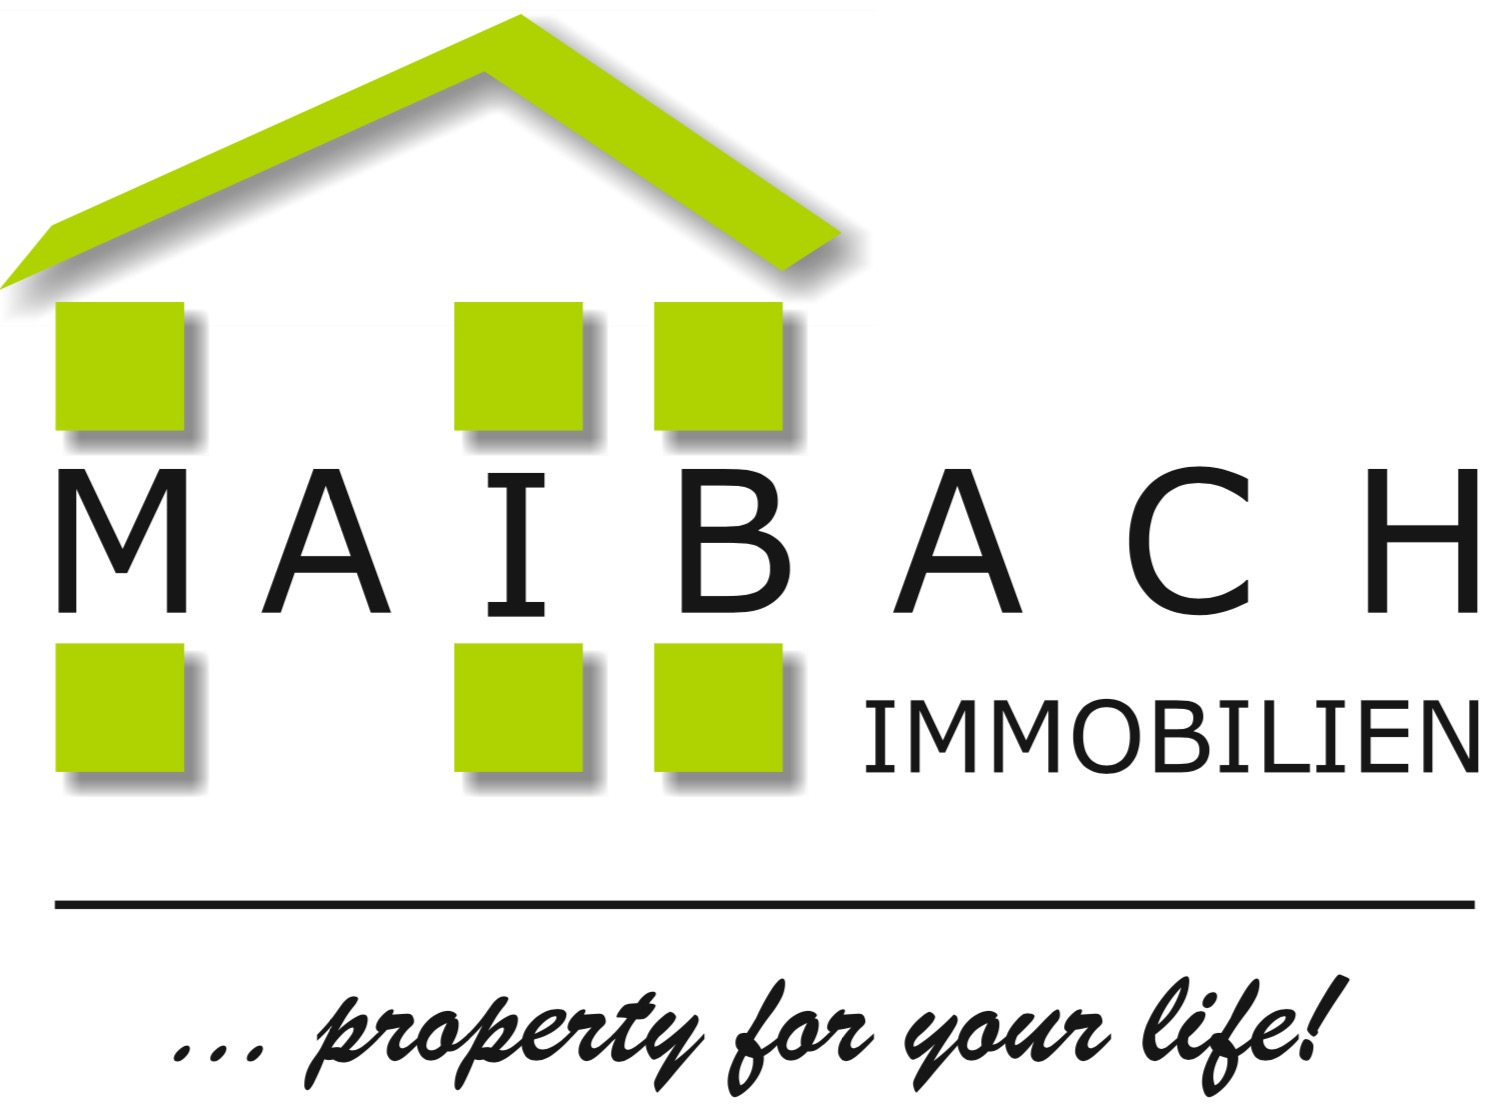 MAIBACH - IMMOBILIEN